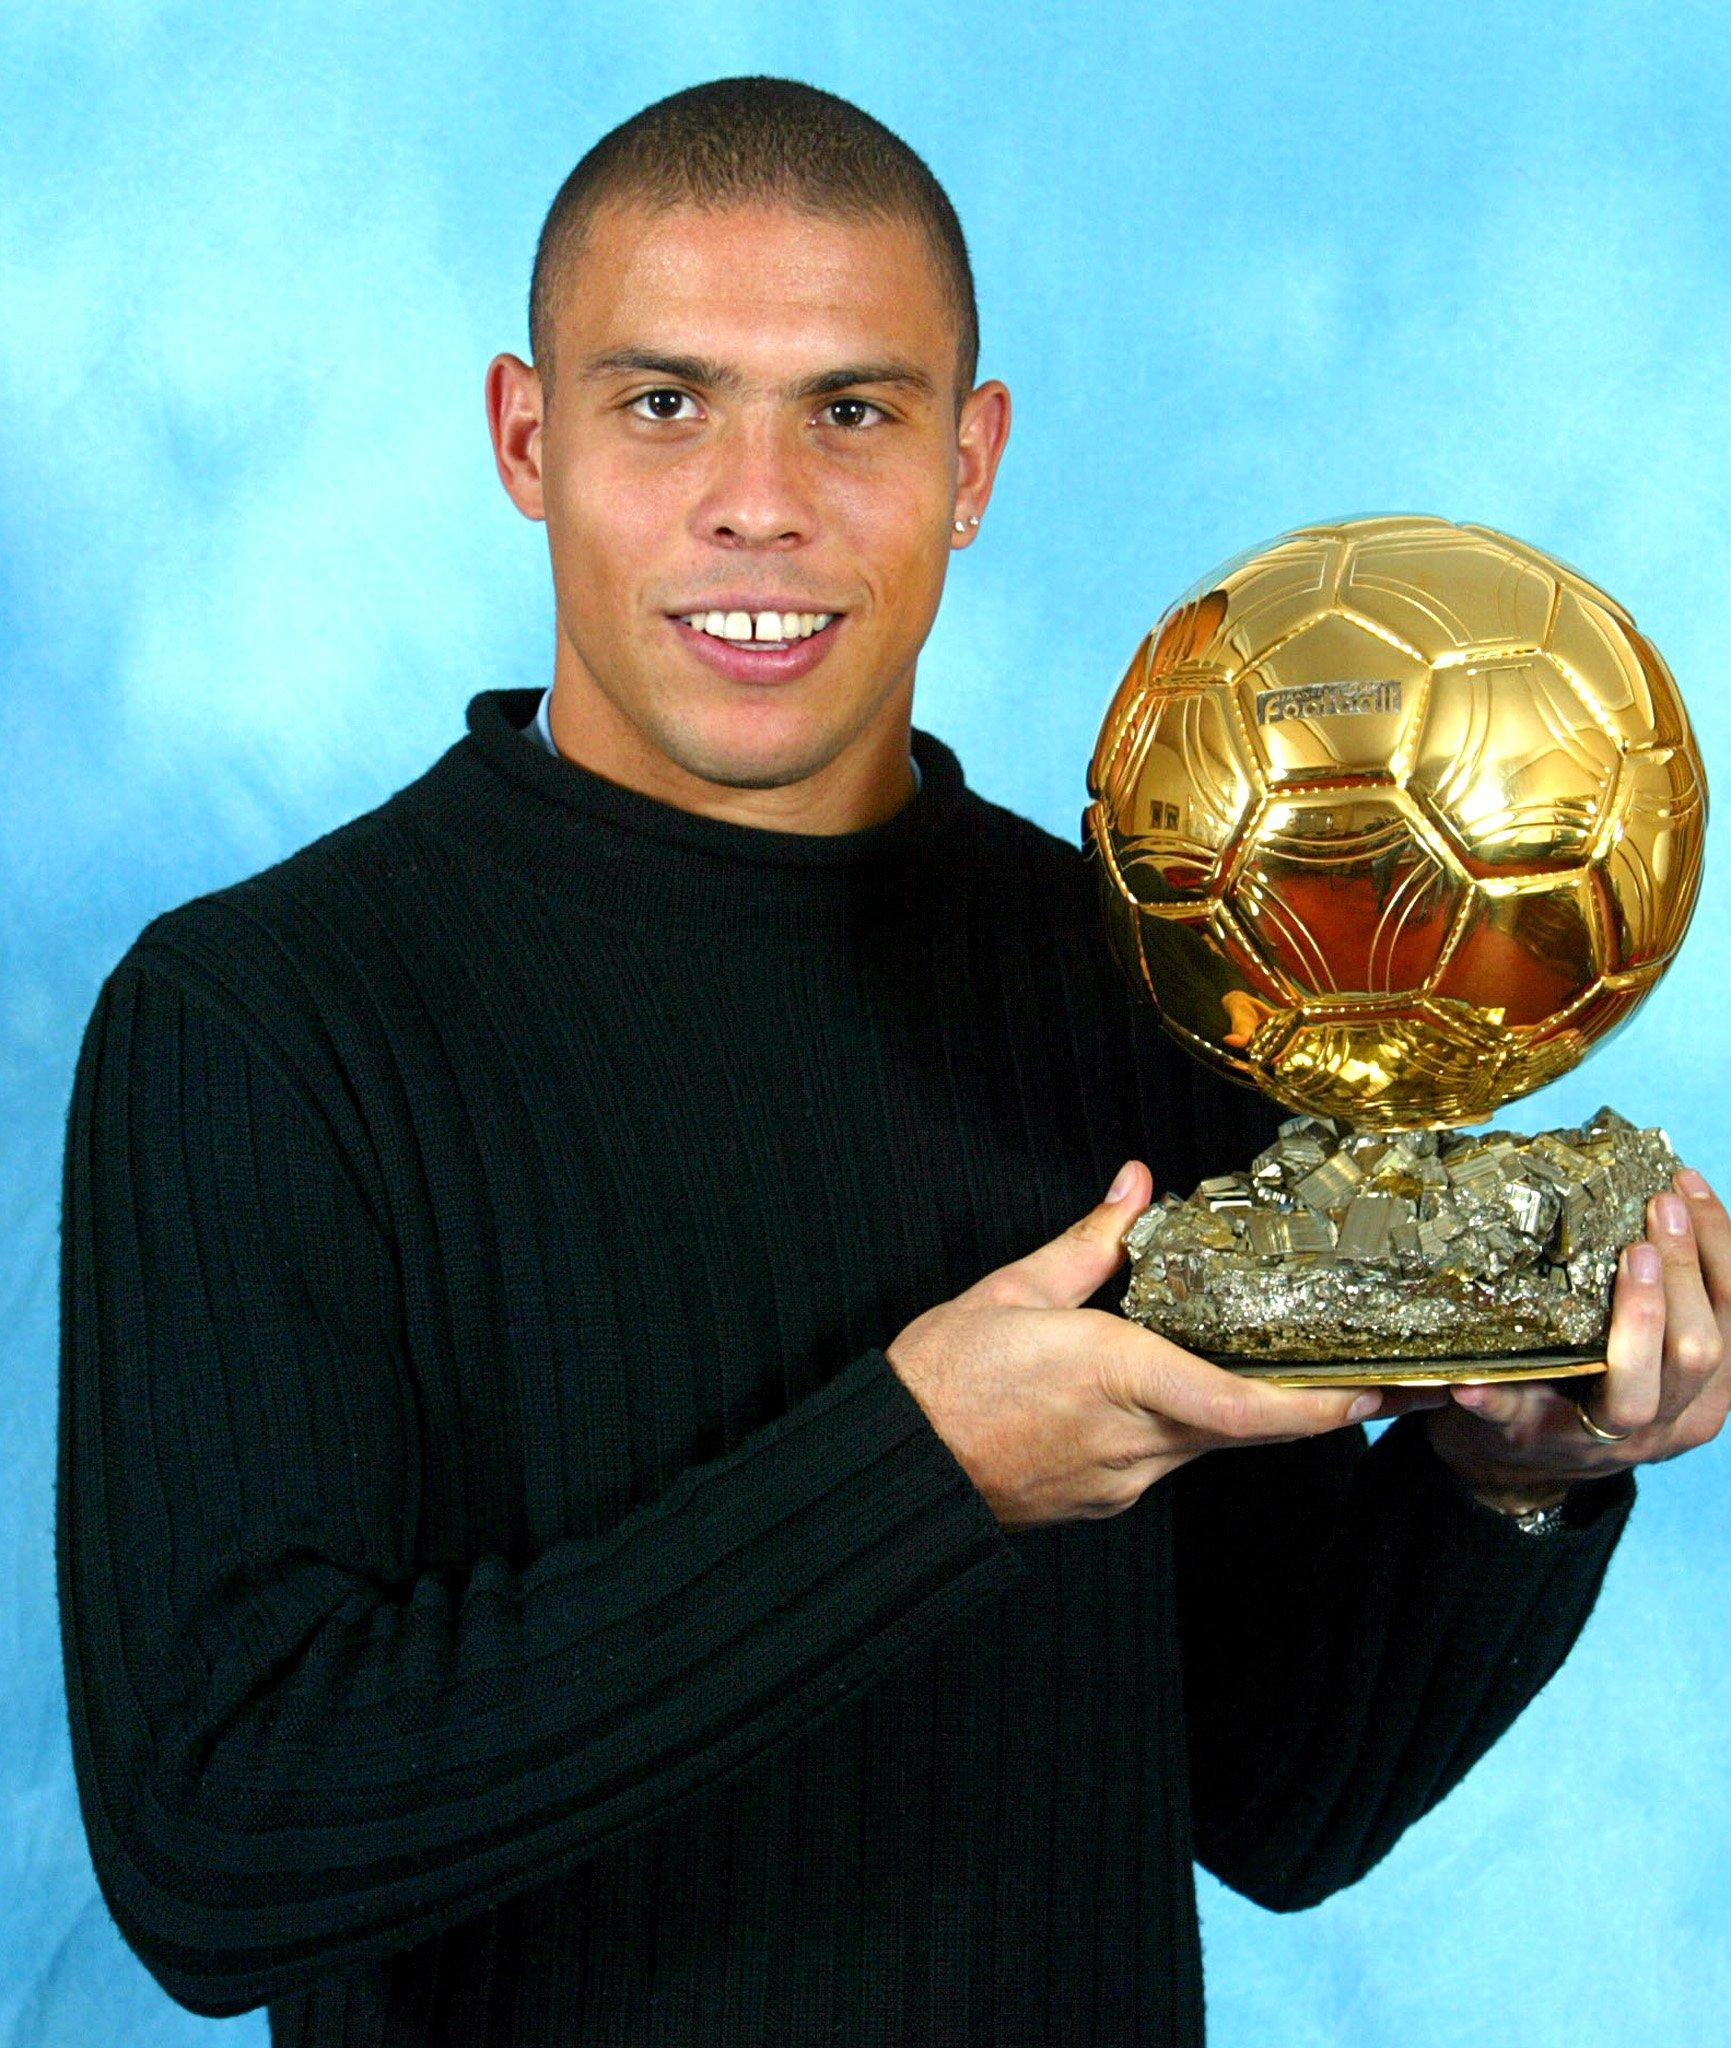 Posing with the Ballon d'Or in a black fleece. Iconic